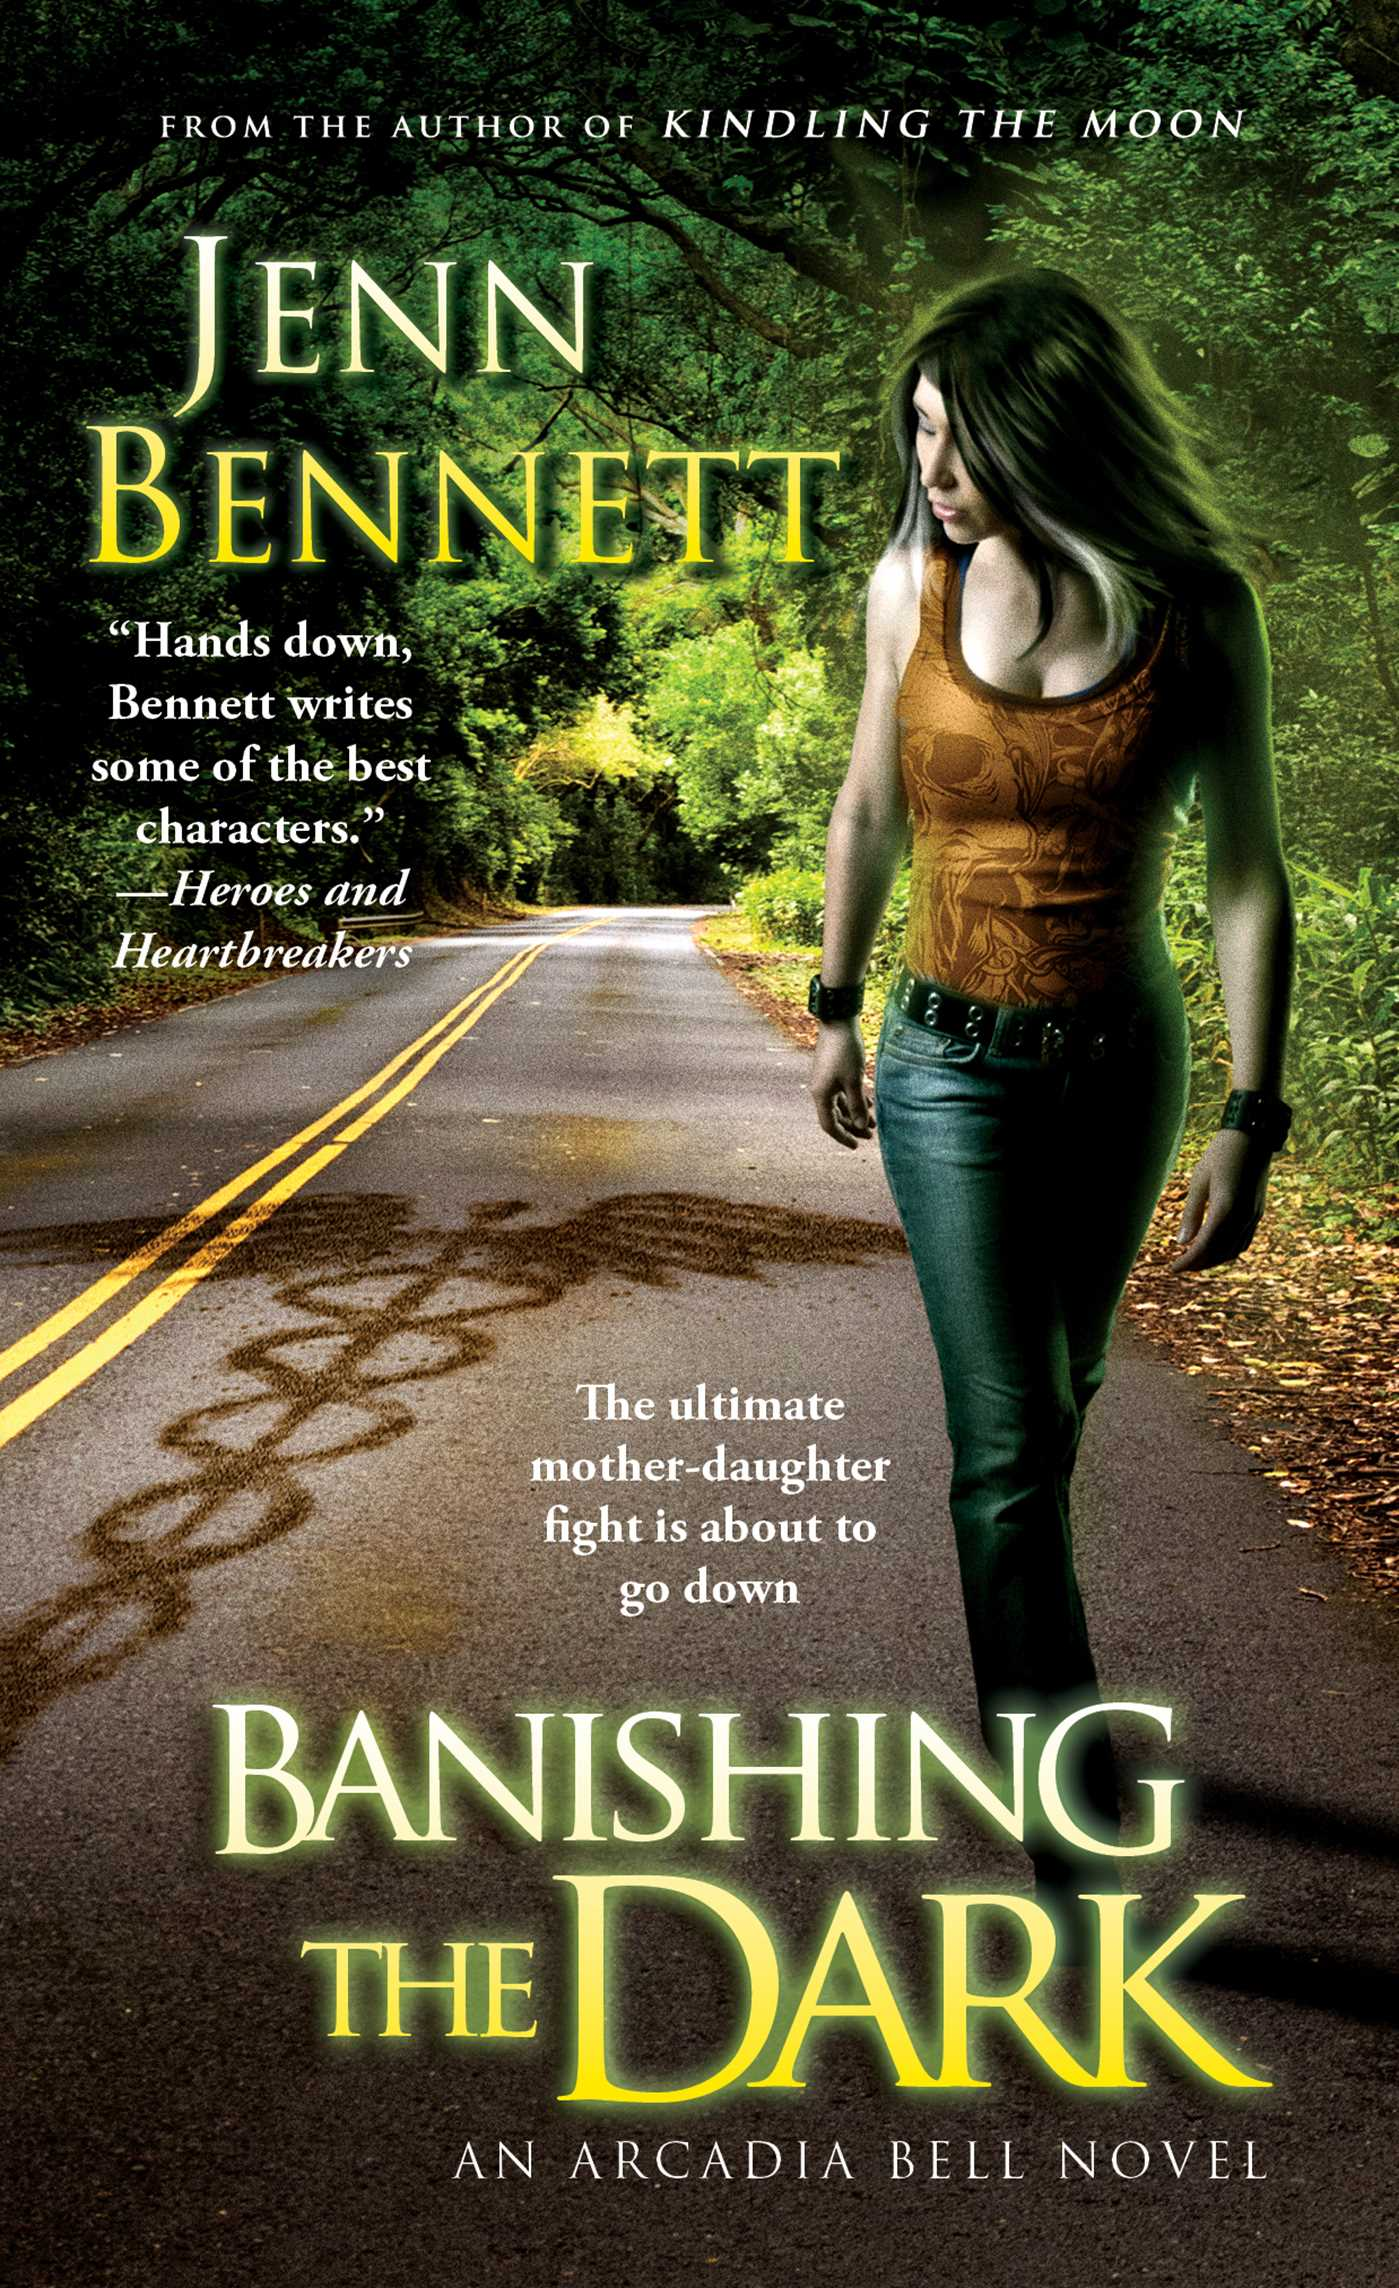 Banishing the dark 9781451695090 hr